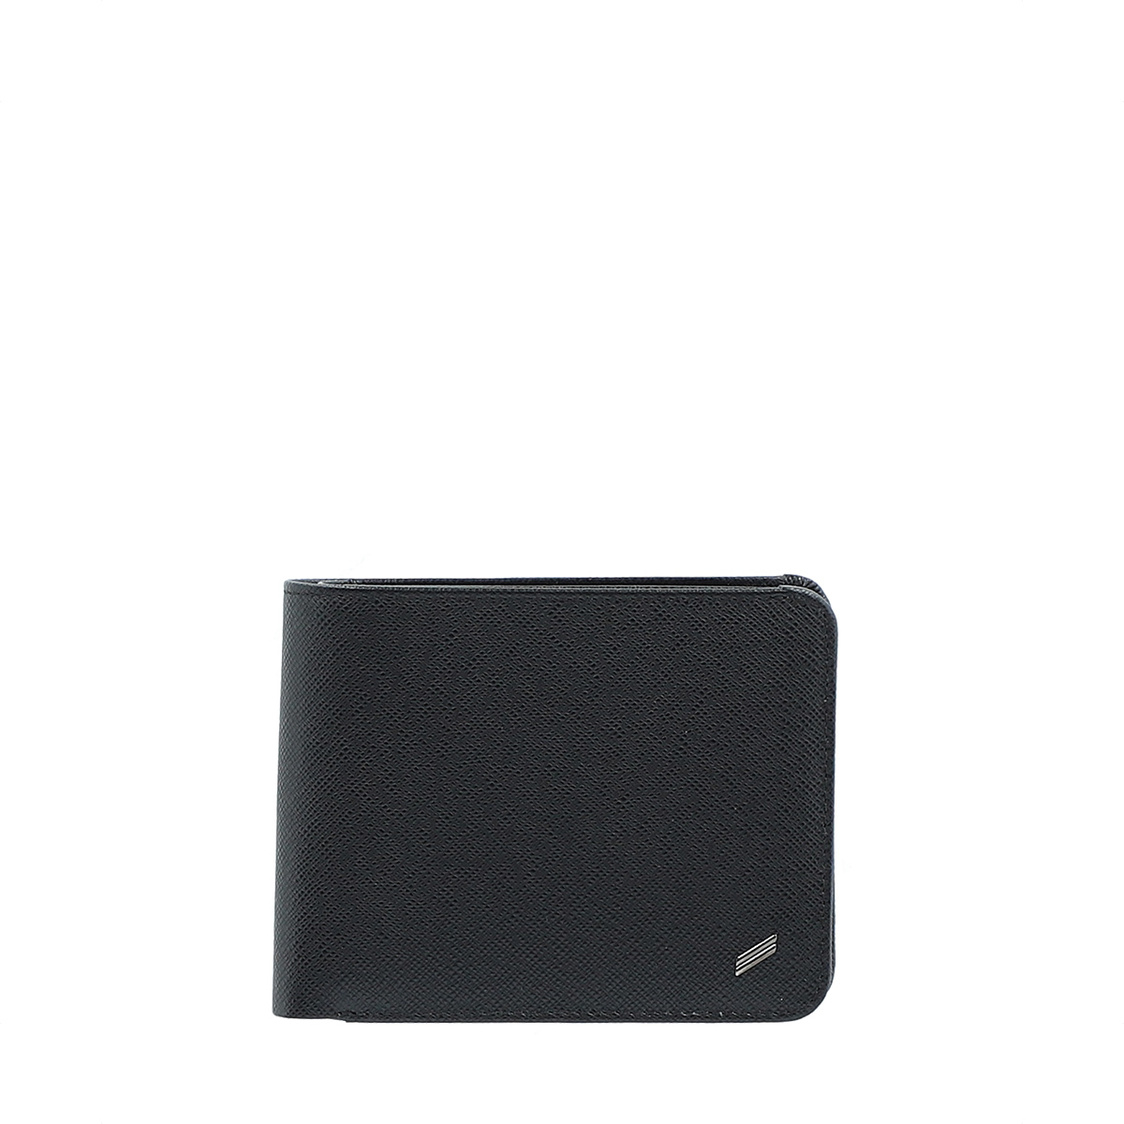 3-Fold Leather Wallet in Black